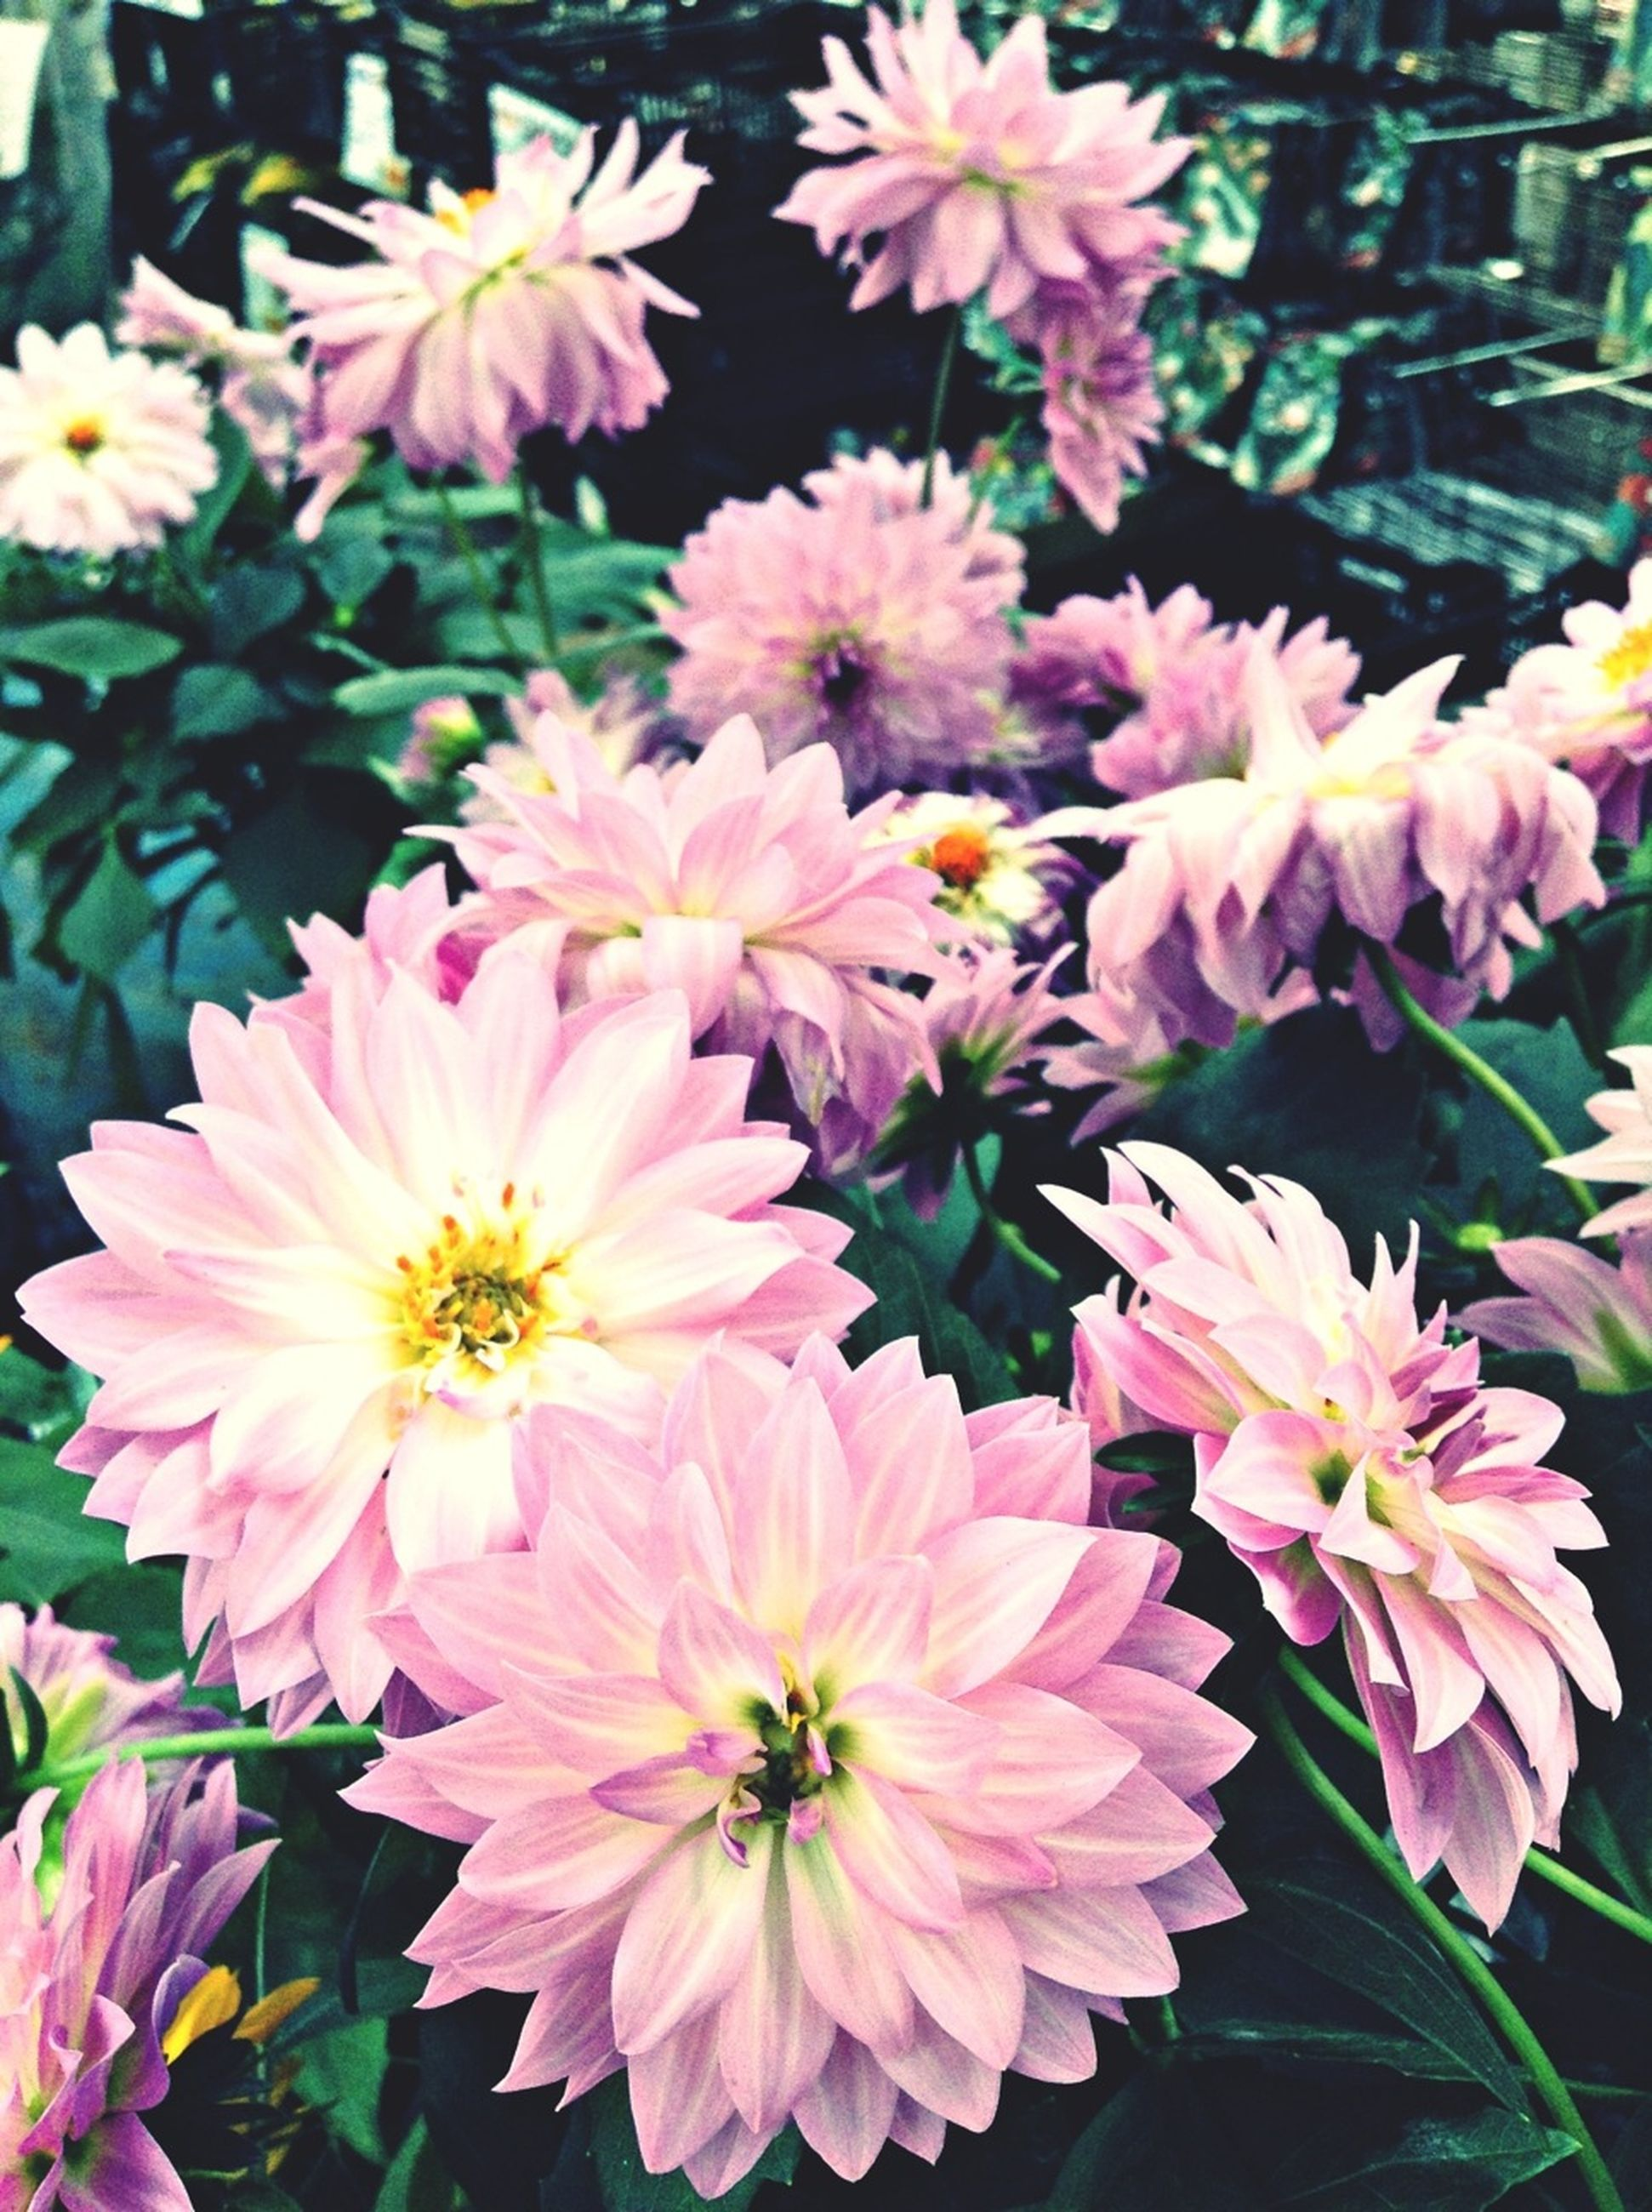 flower, freshness, petal, fragility, flower head, growth, beauty in nature, pink color, blooming, nature, close-up, plant, focus on foreground, in bloom, pollen, high angle view, park - man made space, blossom, leaf, botany